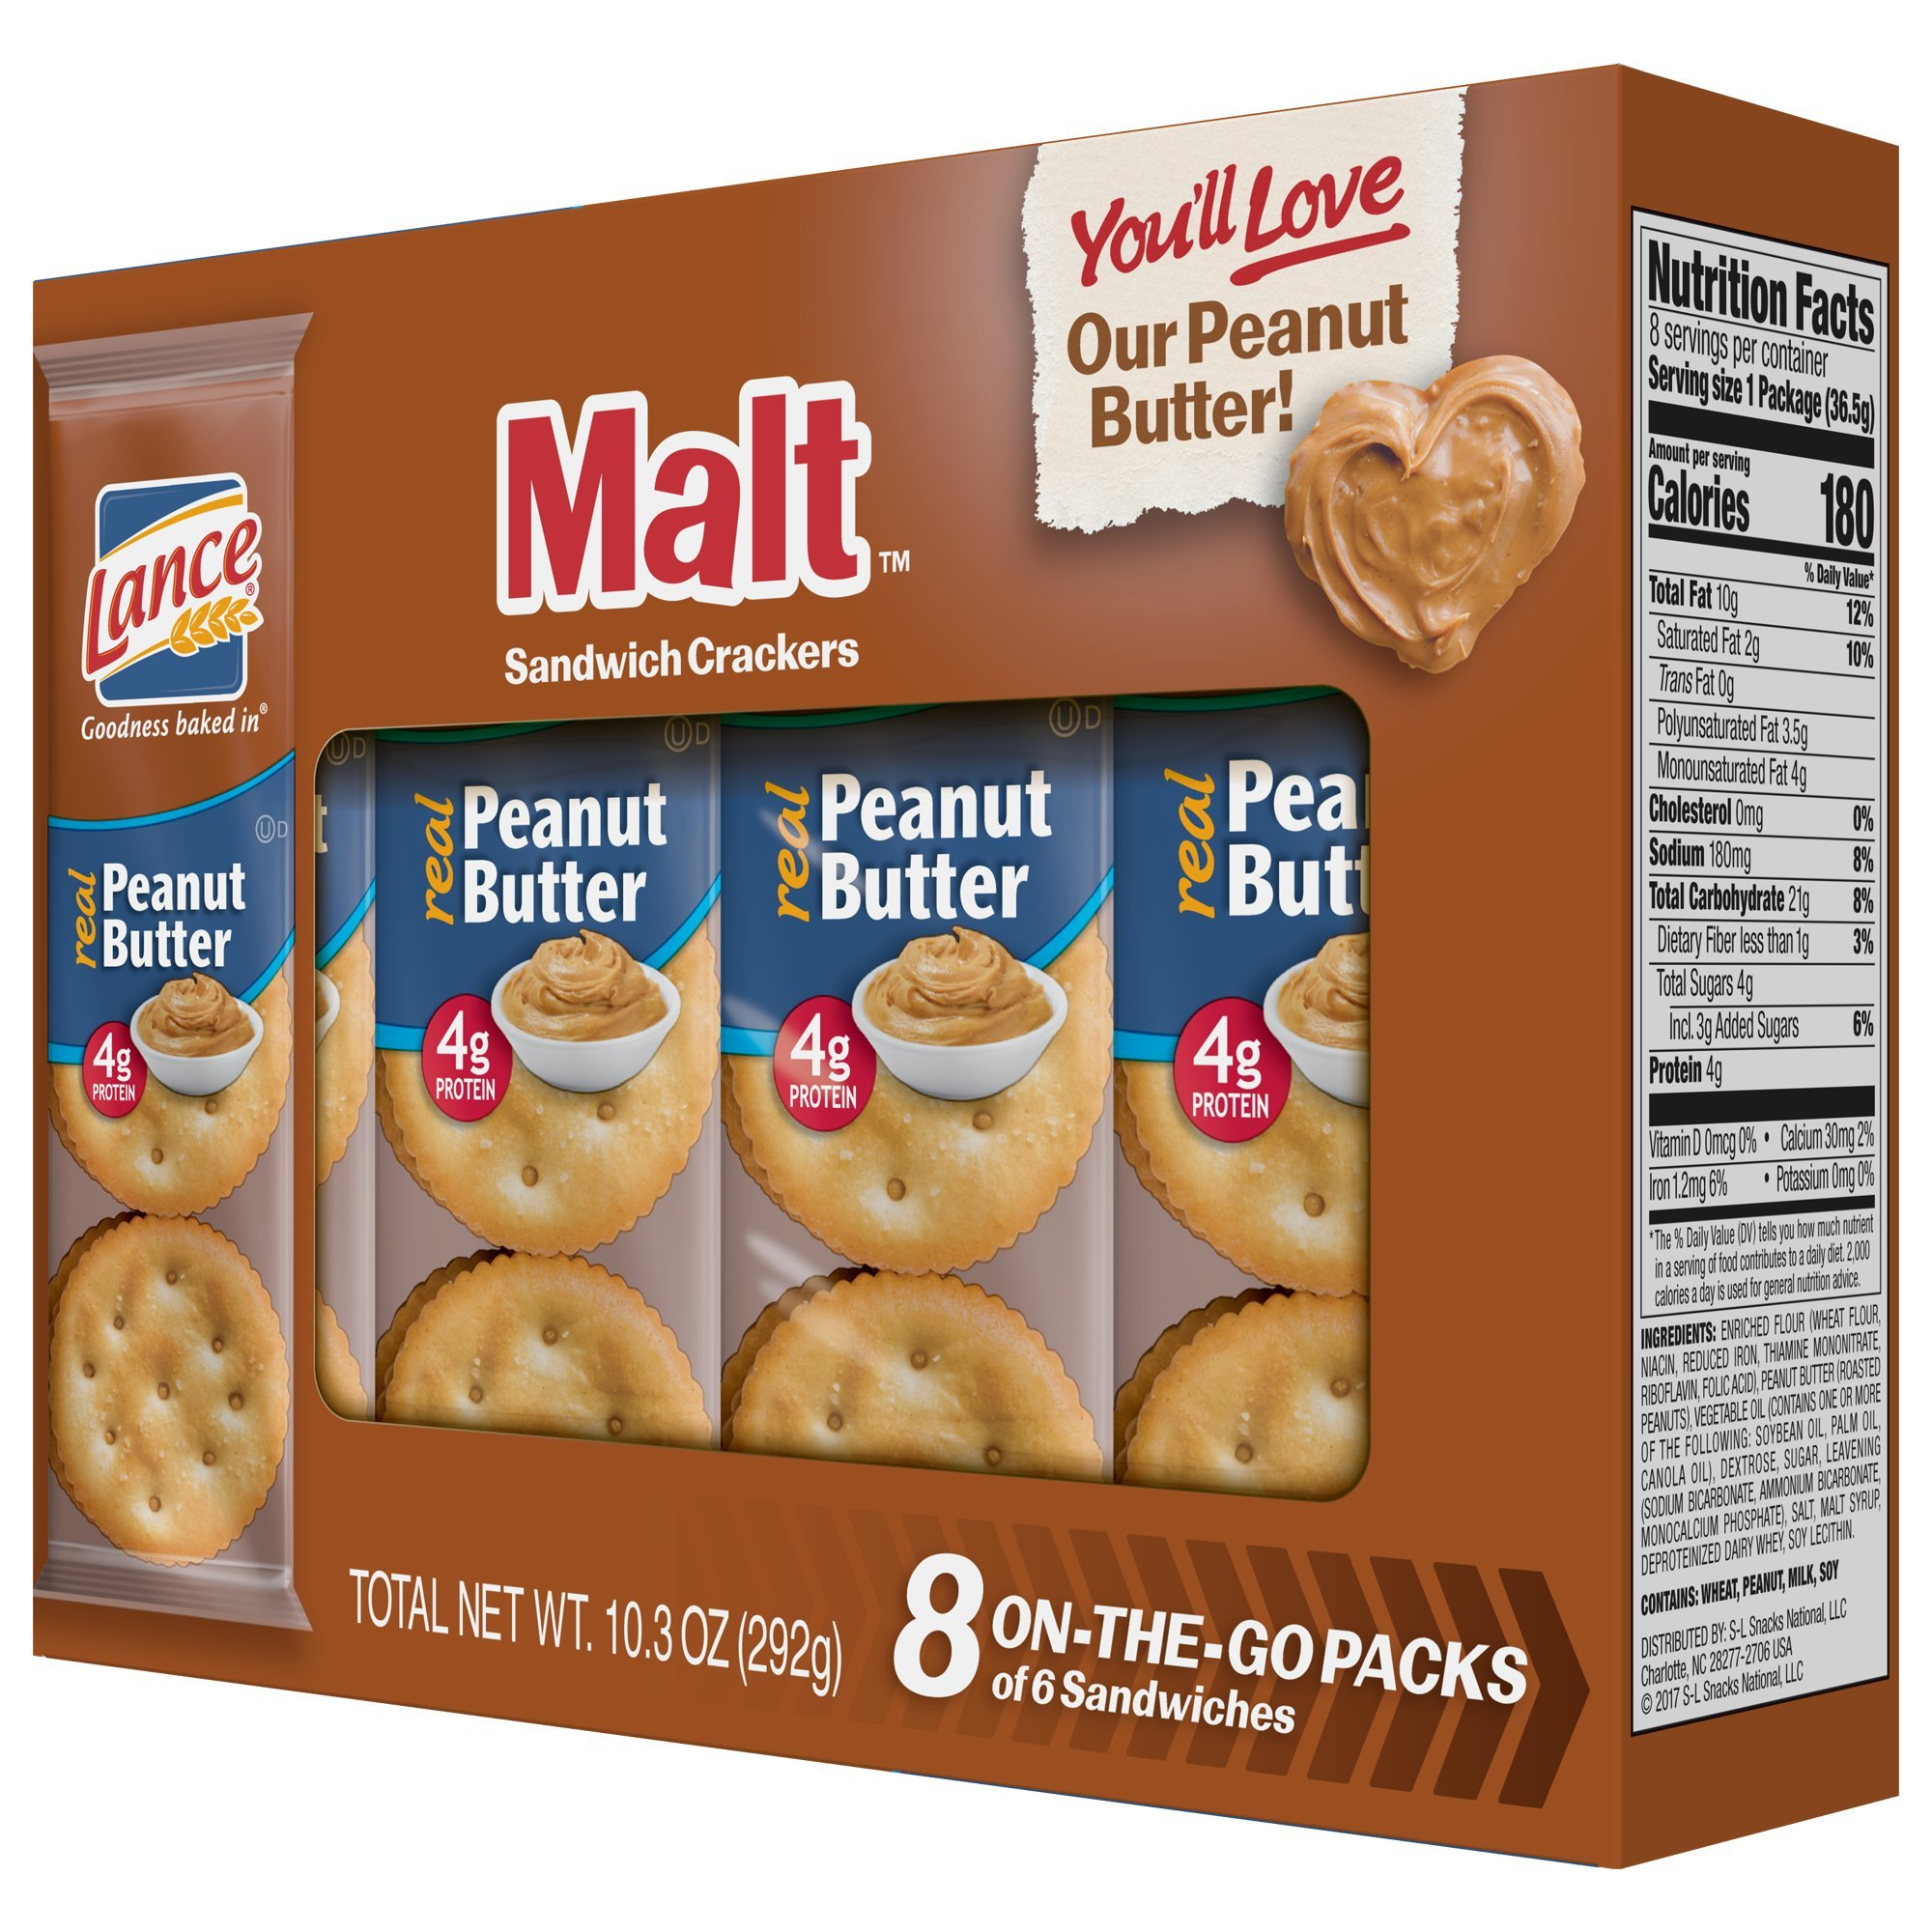 Lance Sandwich Crackers, Malt with Peanut Butter, 8-Count Boxes (Pack of 14) by Lance (Image #7)